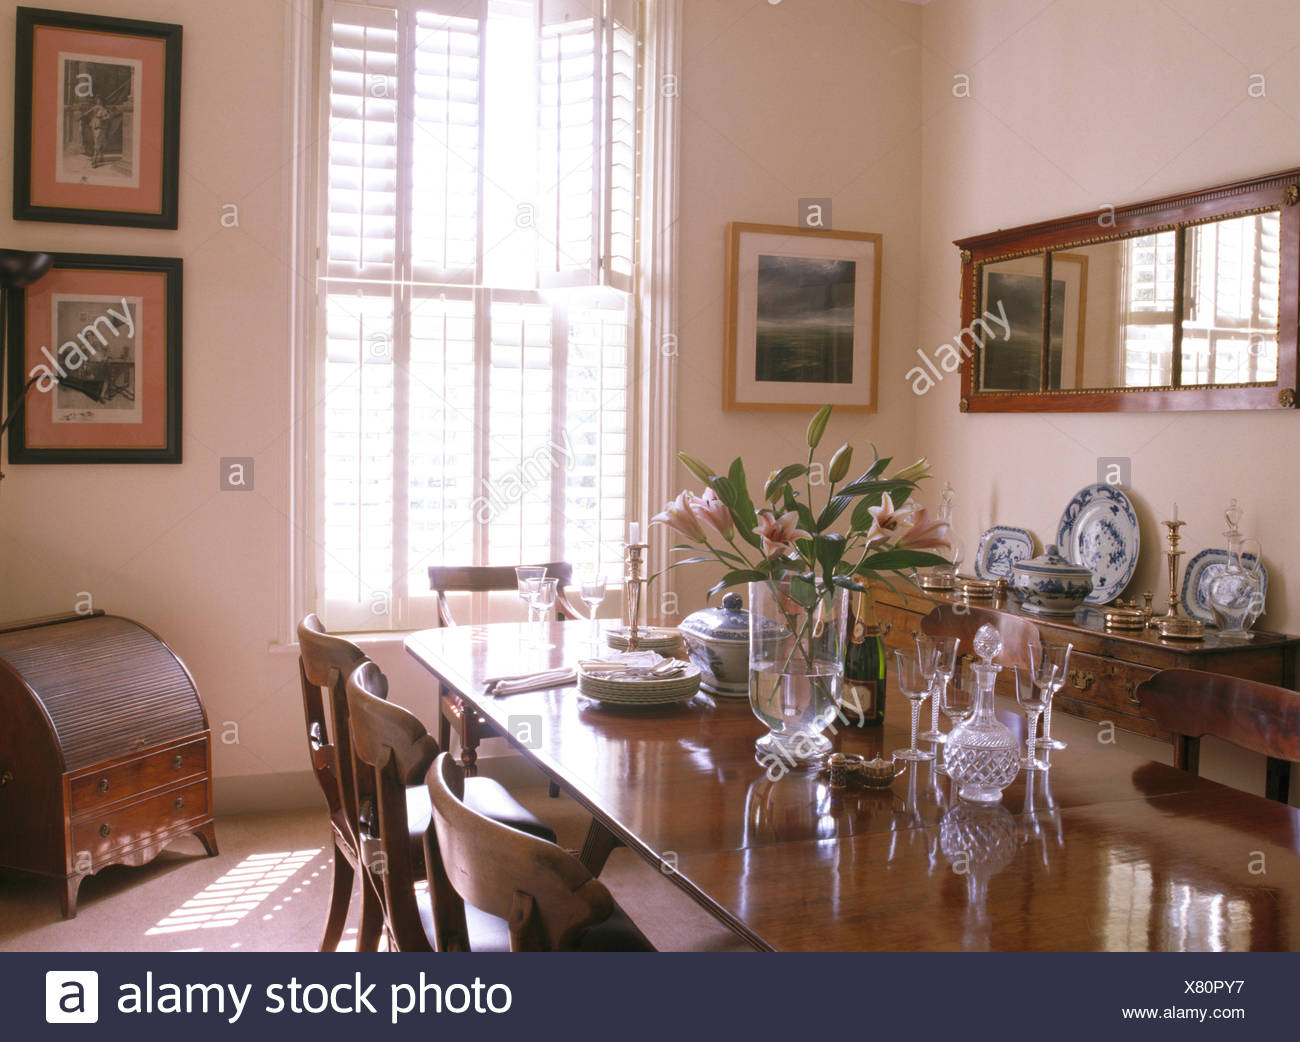 Interiors Dining Rooms Plantation Shutters High Resolution Stock Photography And Images Alamy